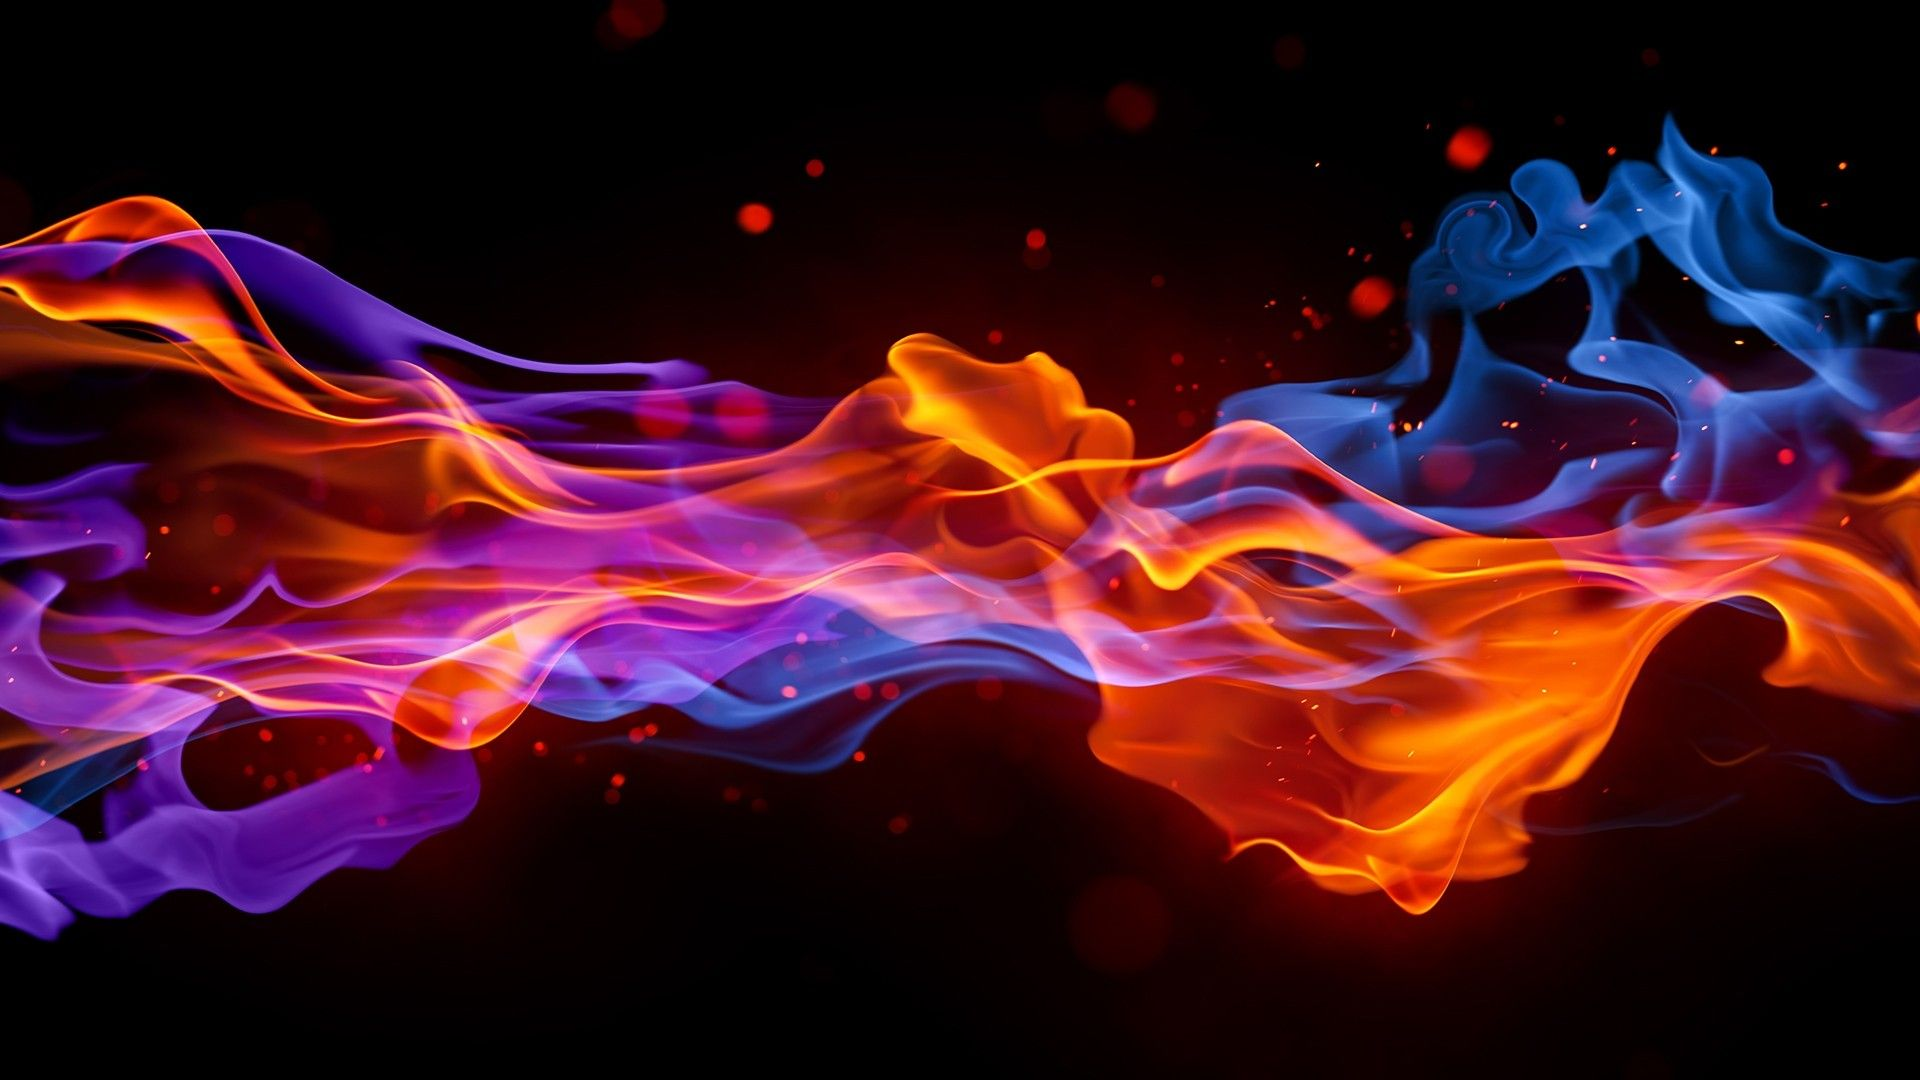 Blue Flame Wallpapers - Wallpaper Cave